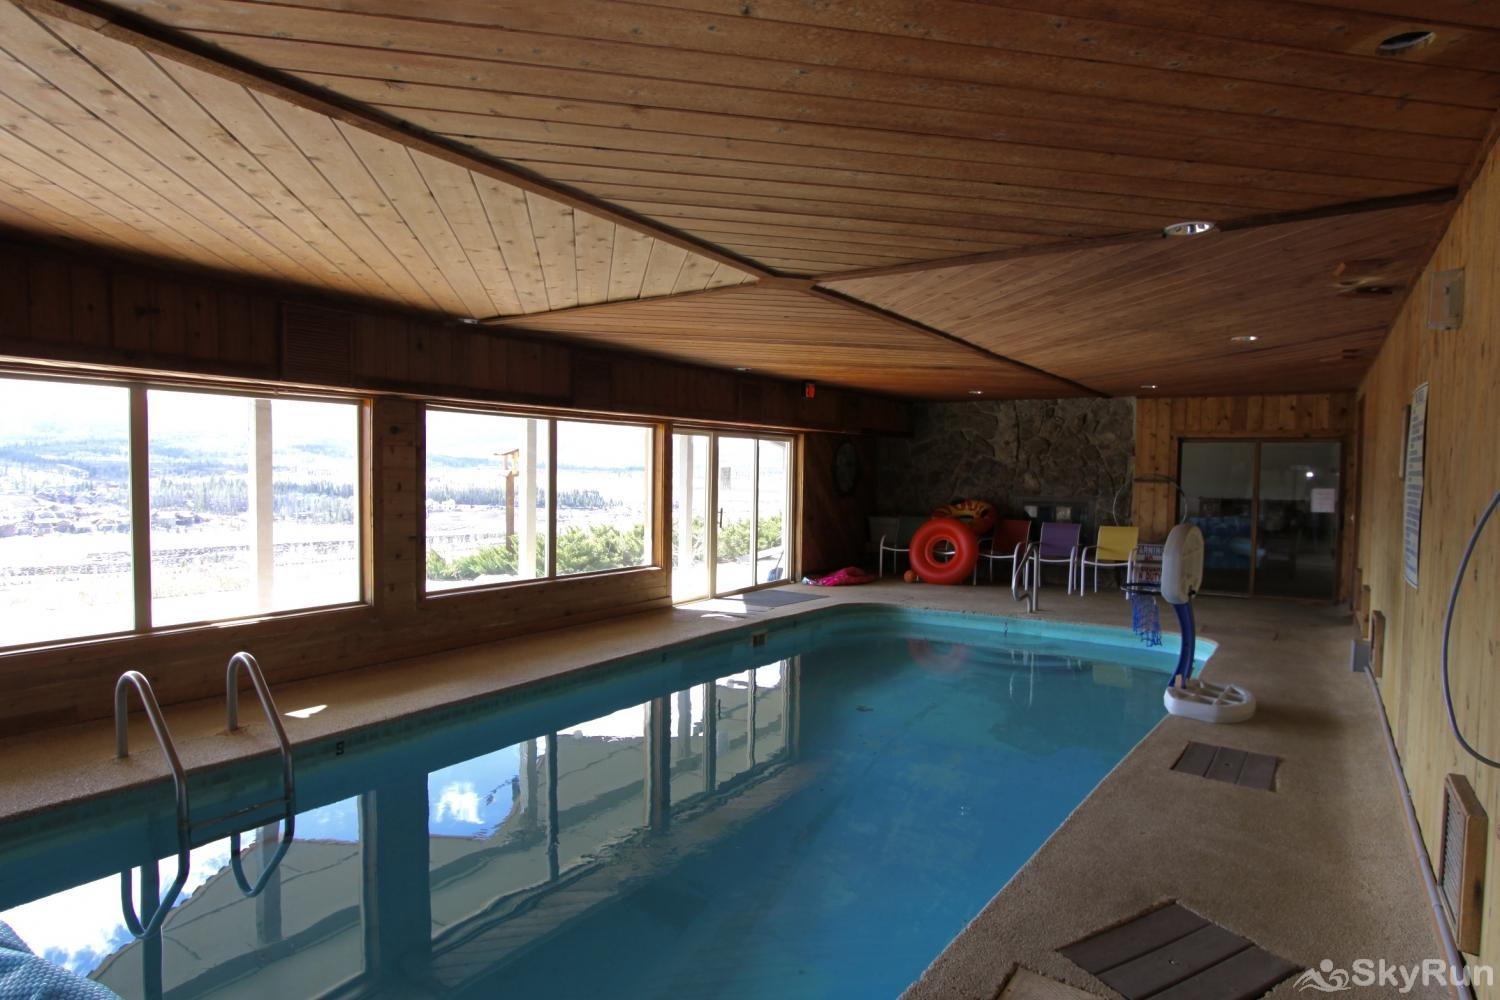 113A WPTC - Cranmer Rd Indoor Pool with a view!